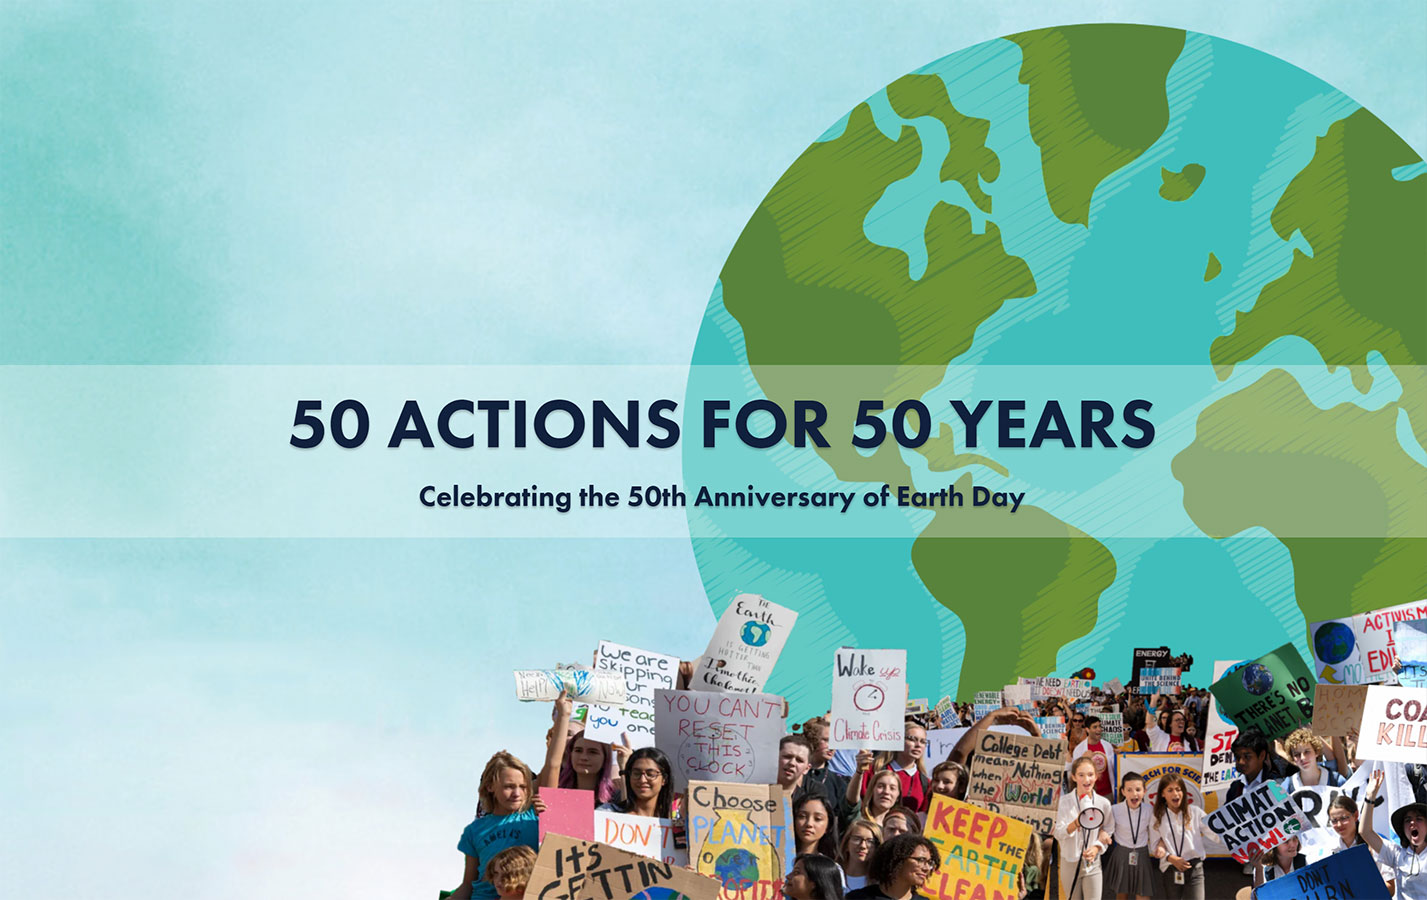 50 Actions for 50 Years: Celebrating the 50th Anniversary of Earth Day